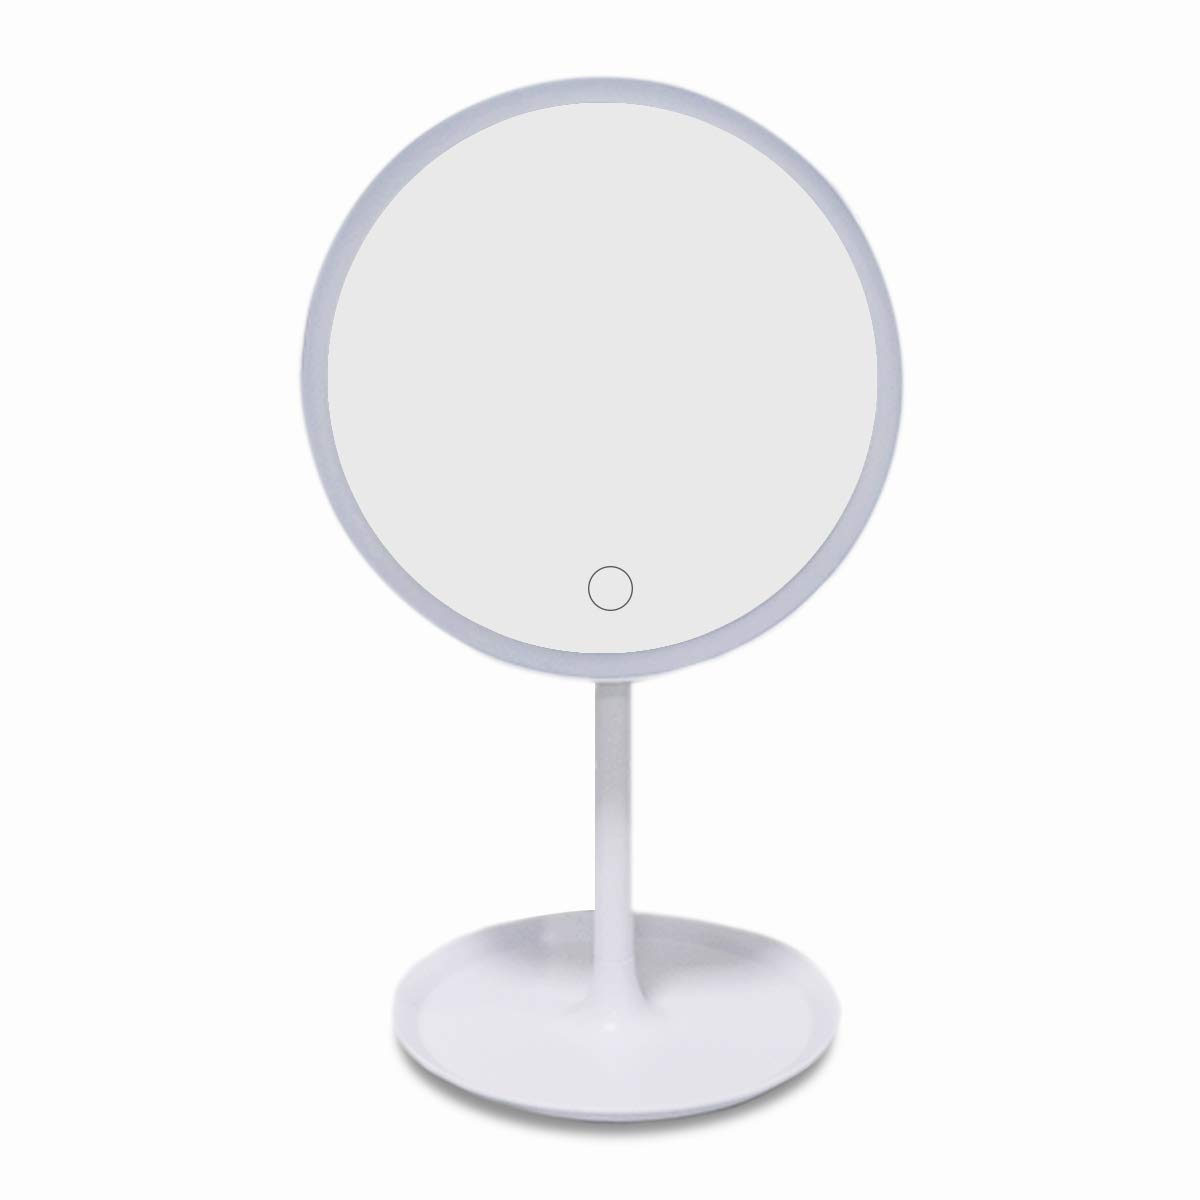 Makeup Mirror with Lights Rechargeable Lighted Vanity Mirror Dimmable LED Cosmetic Mirror with Stand Wireless Counter-top illuminated Mirror Rotates 45 Tabletop Portable Round White